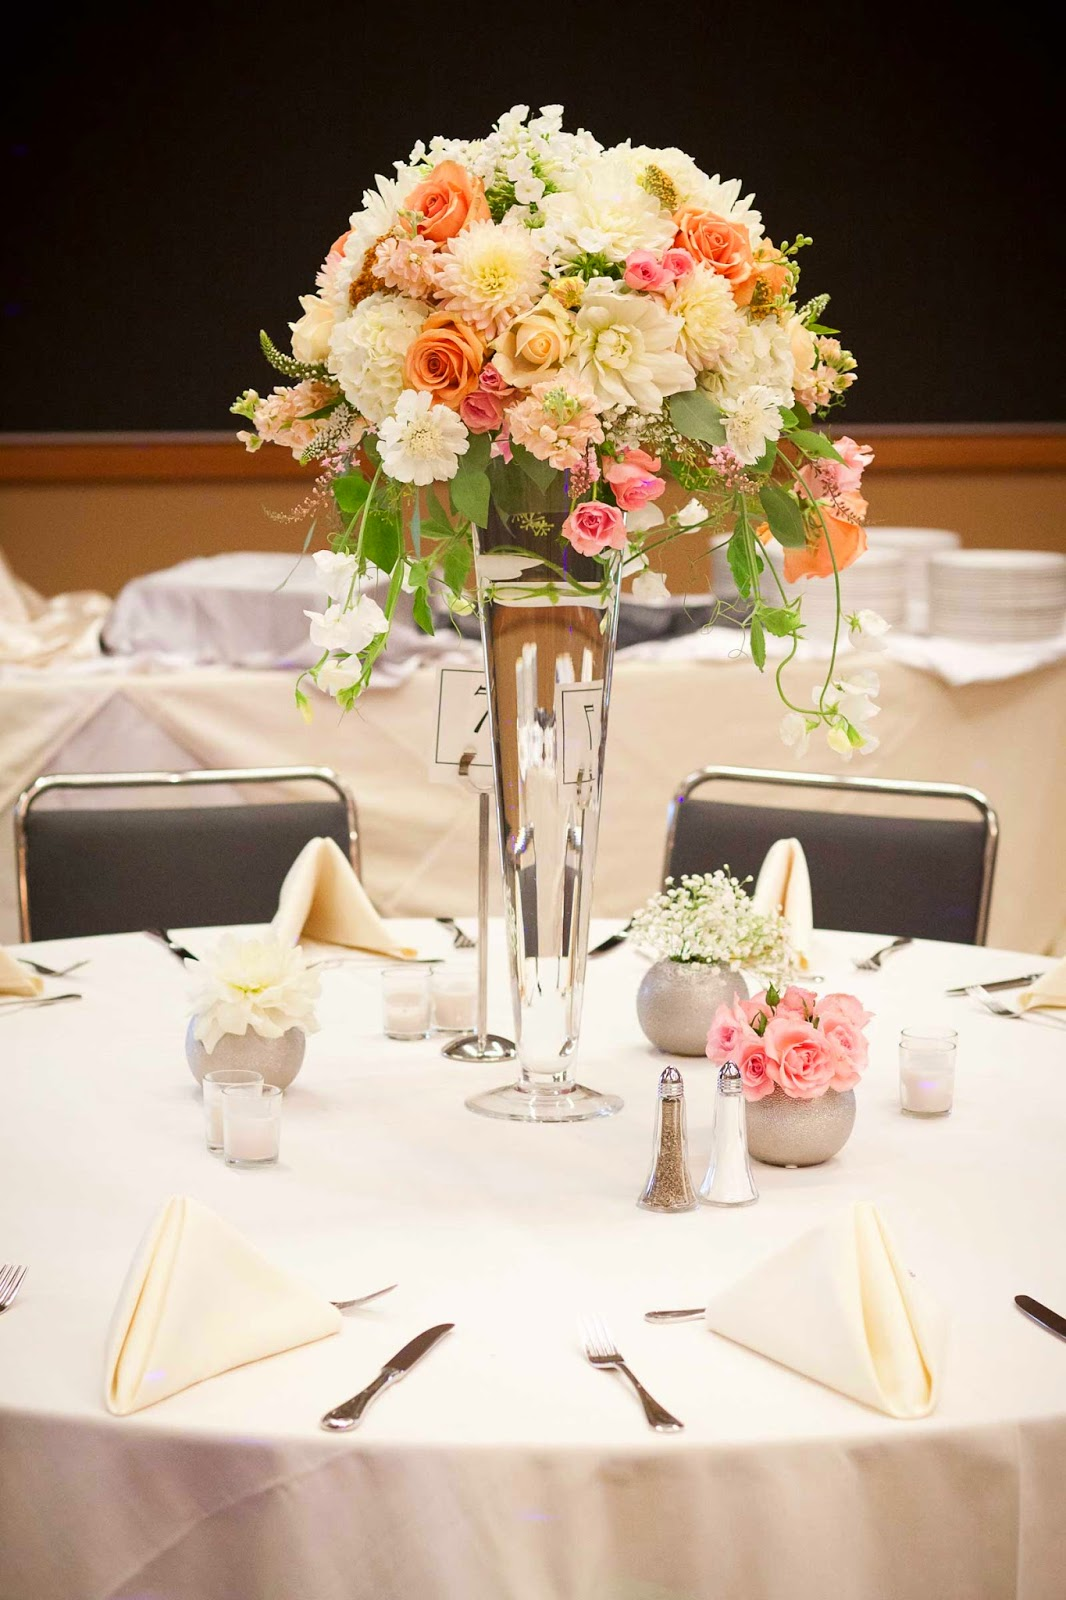 Centerpiece Vase Decorations : Best wedding centerpiece ideas diy centerpieces